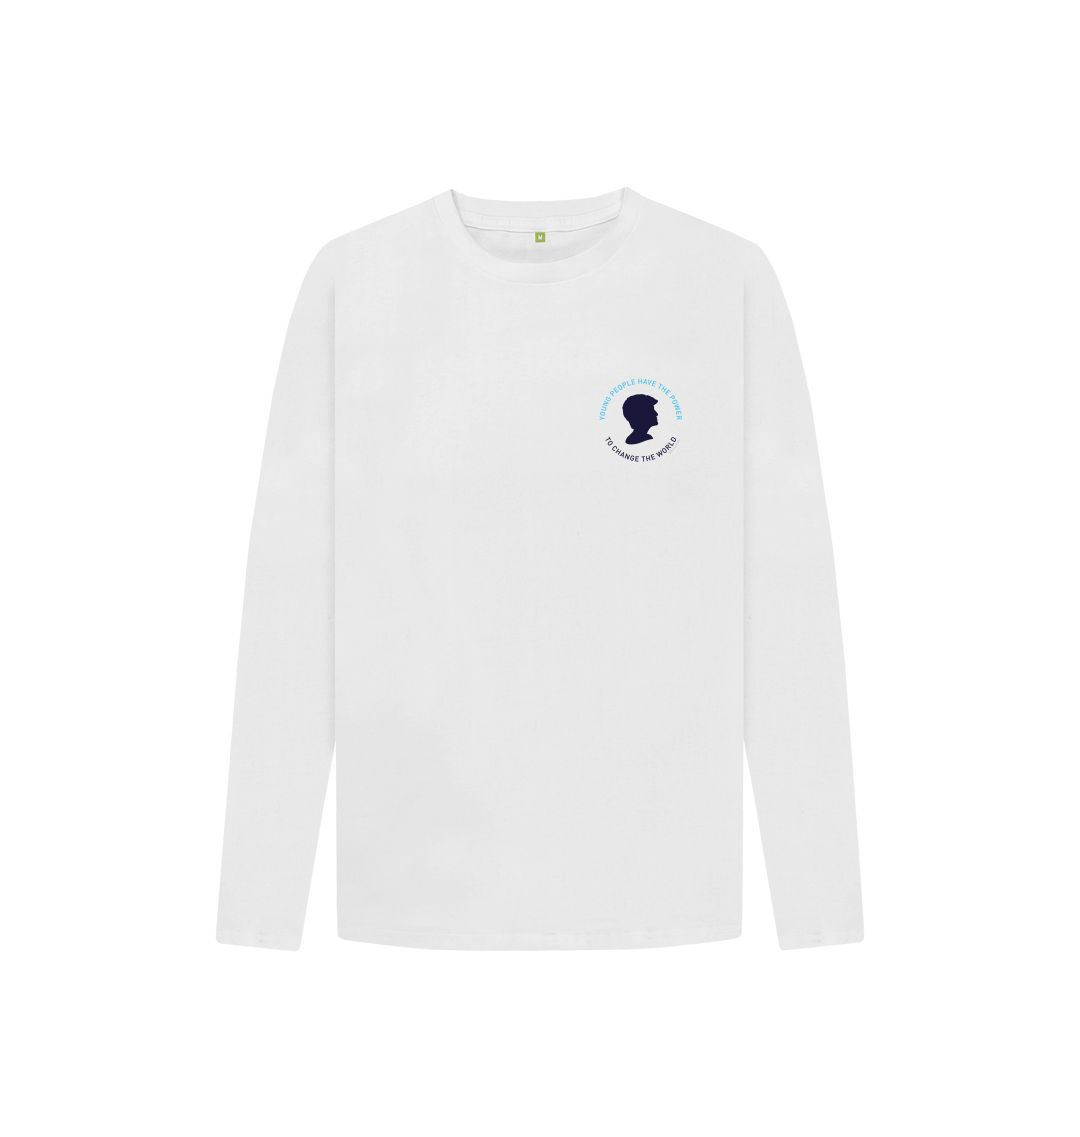 White Diana Long Sleeve Tee (Kids)